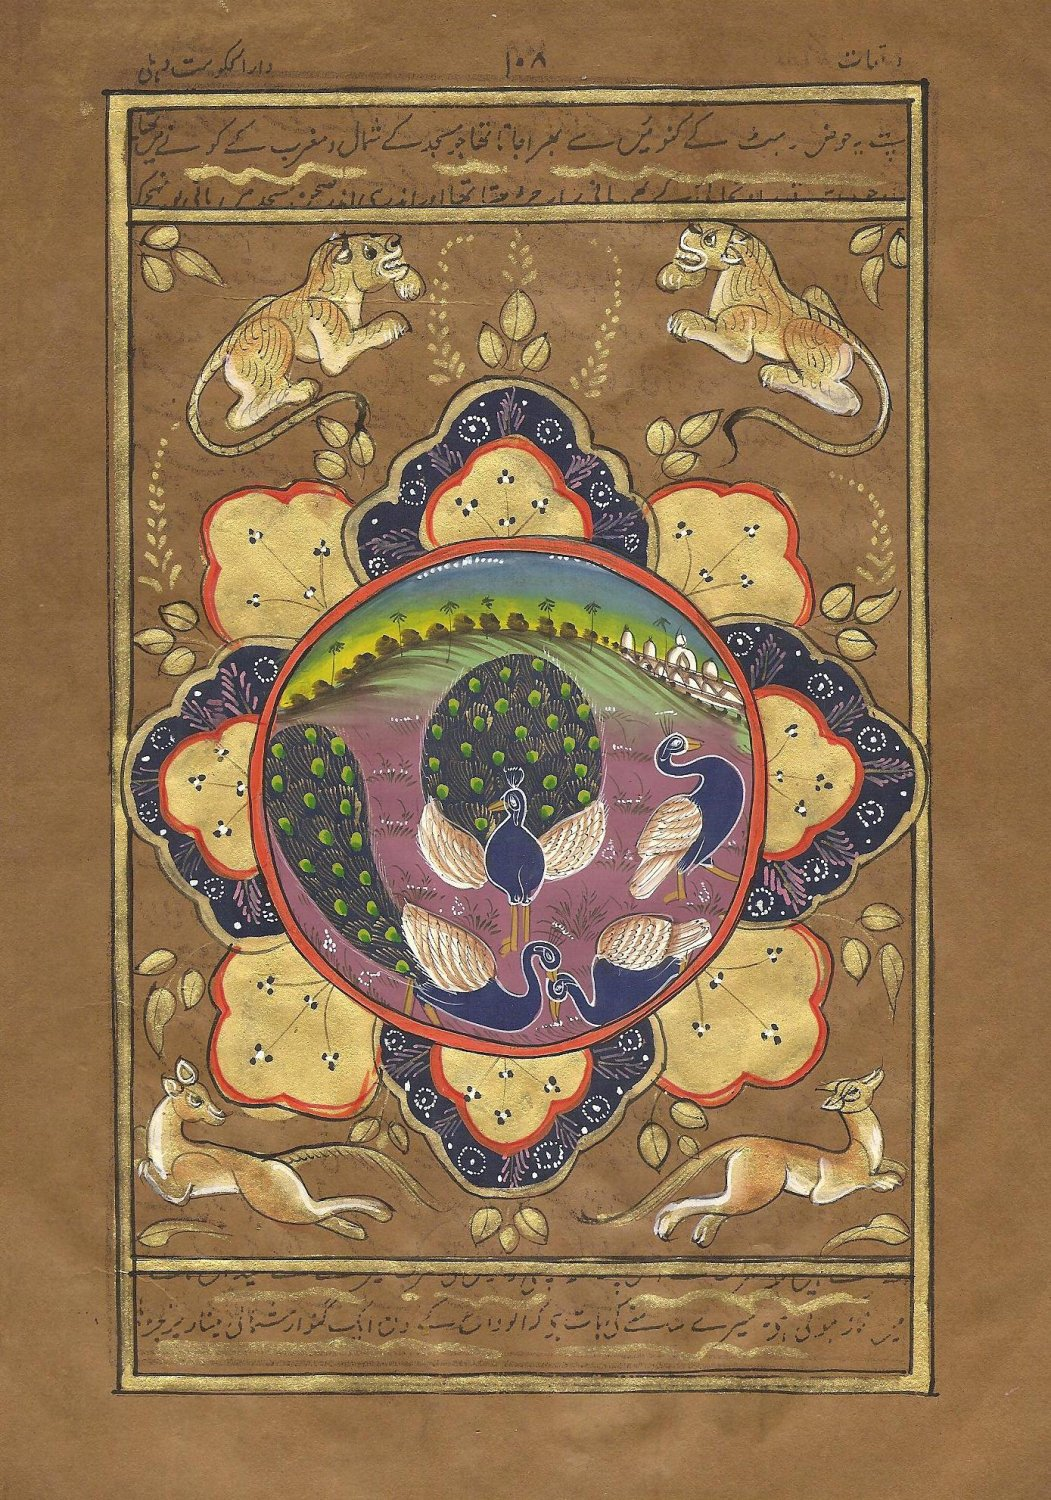 Indo Persian Peacock Bird Painting Miniature Illuminated Manuscript Islamic Art